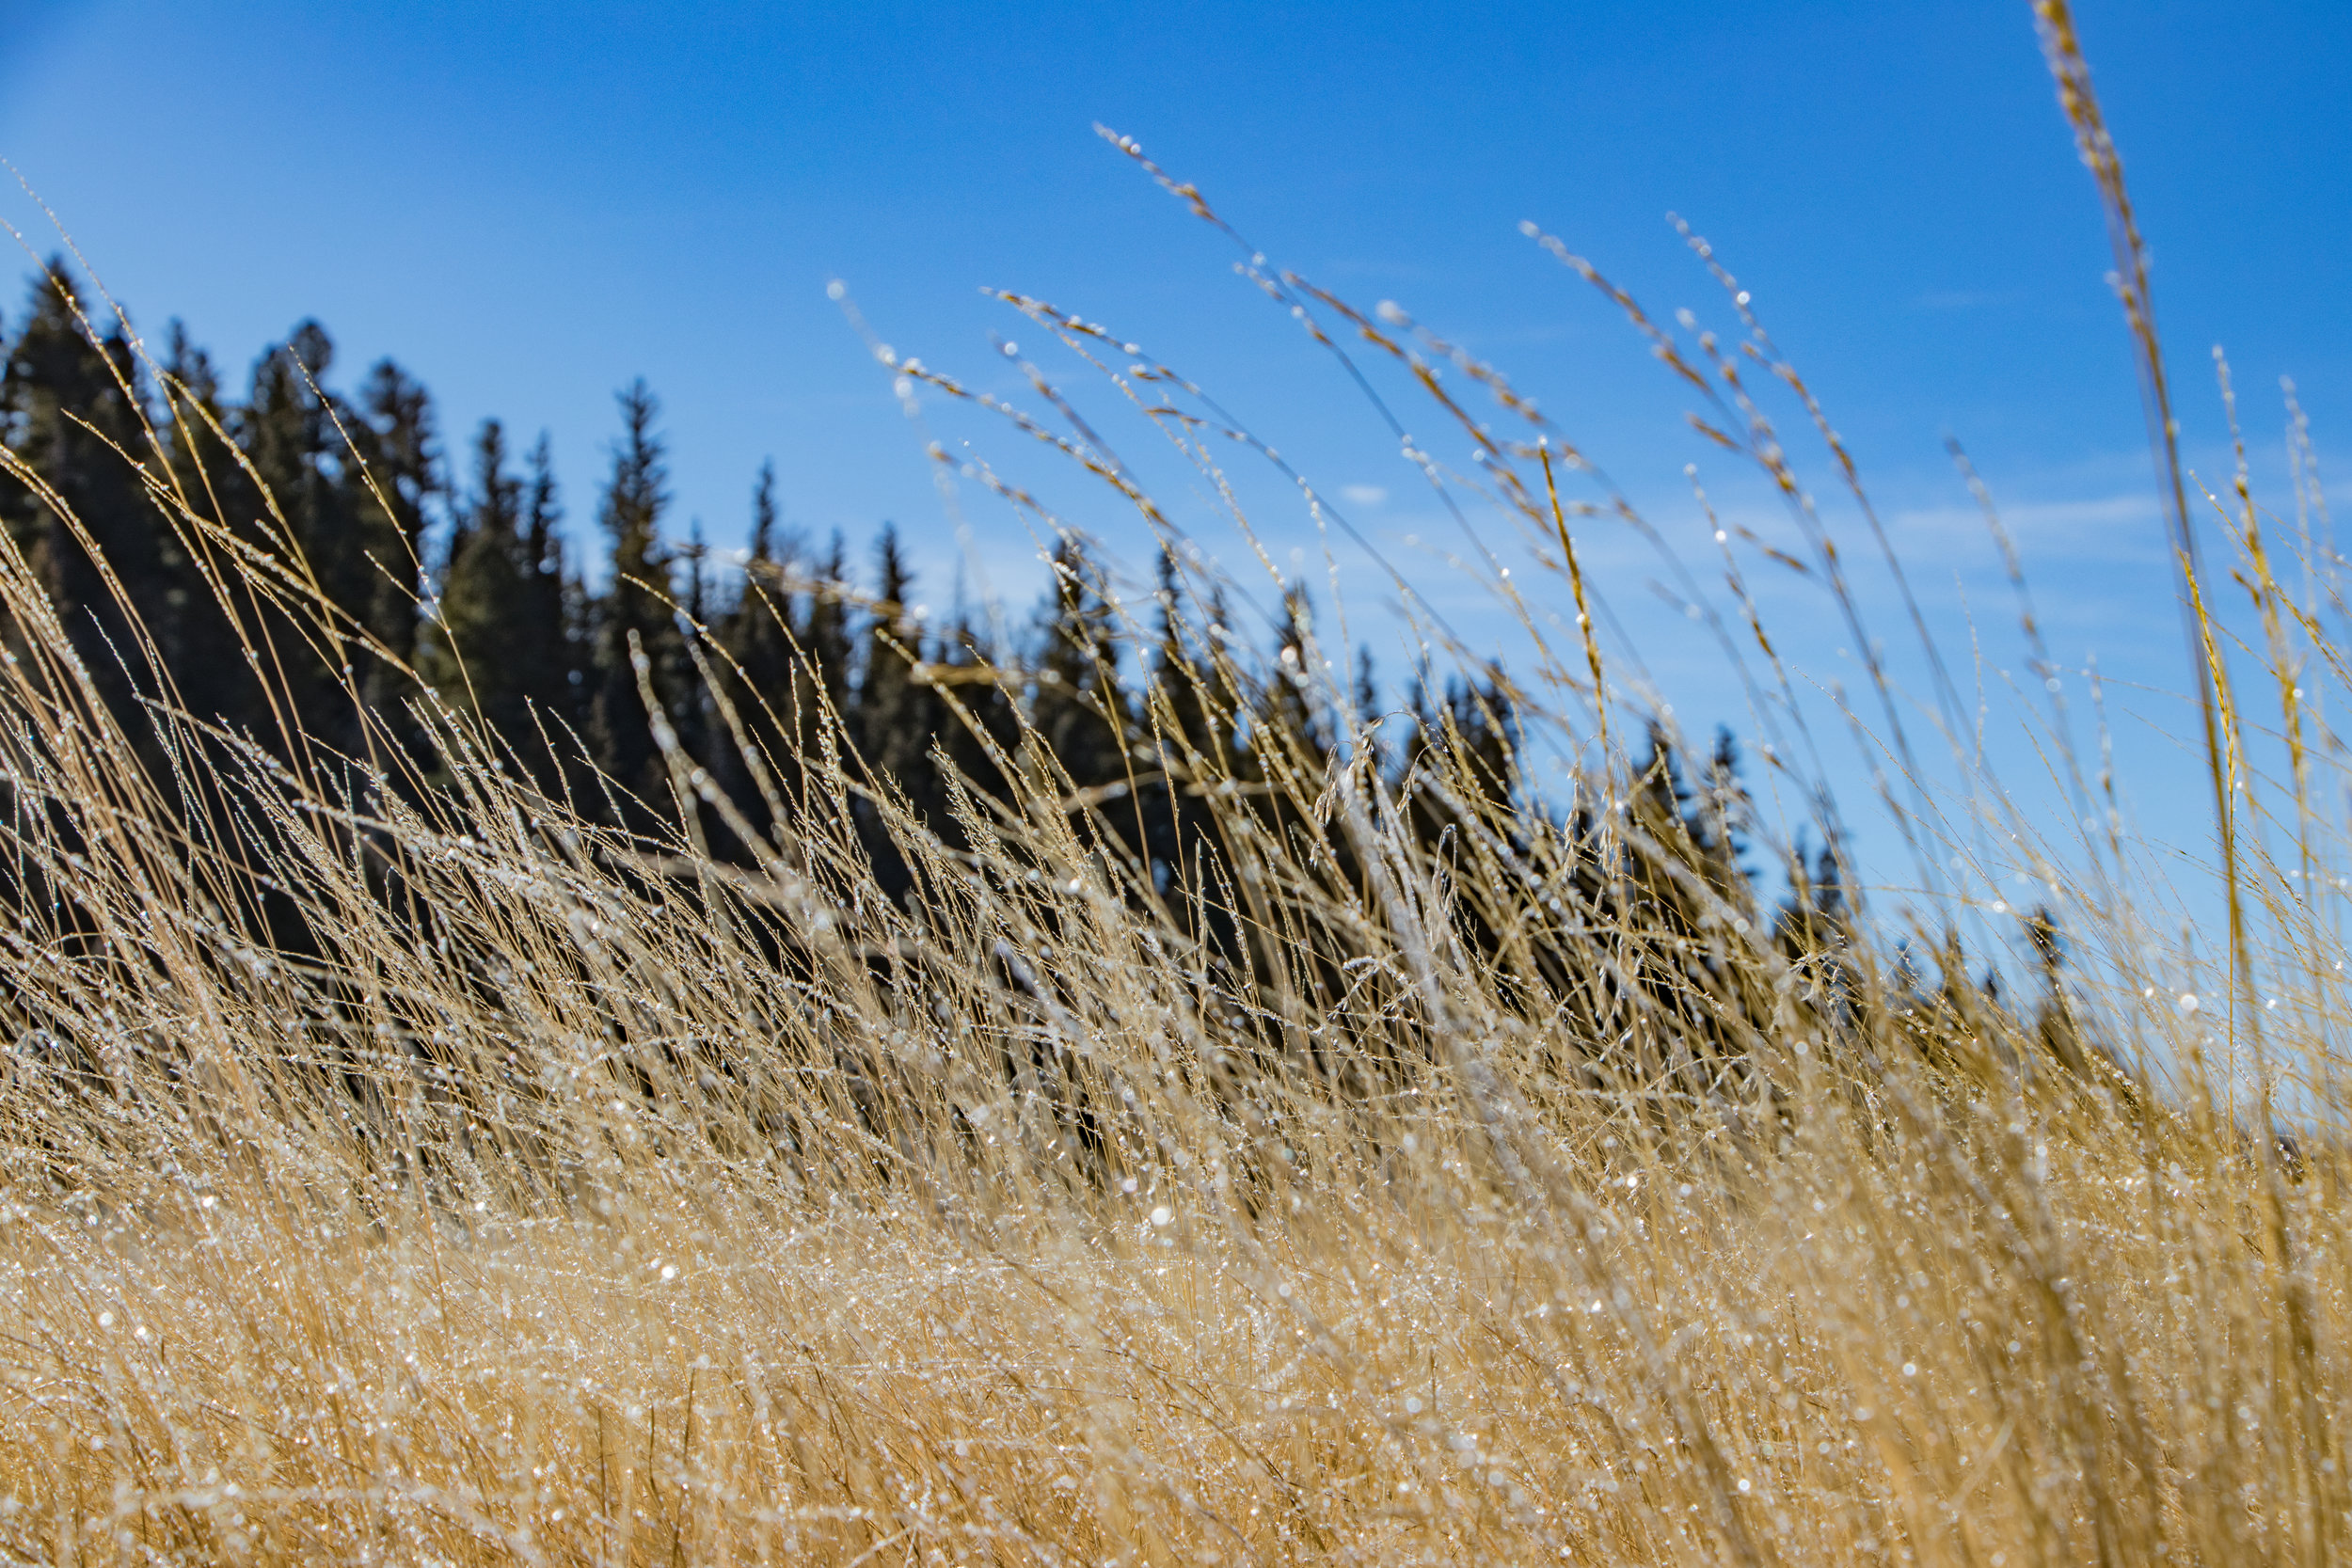 Dew on the grass. Valles Caldera National Park, New Mexico